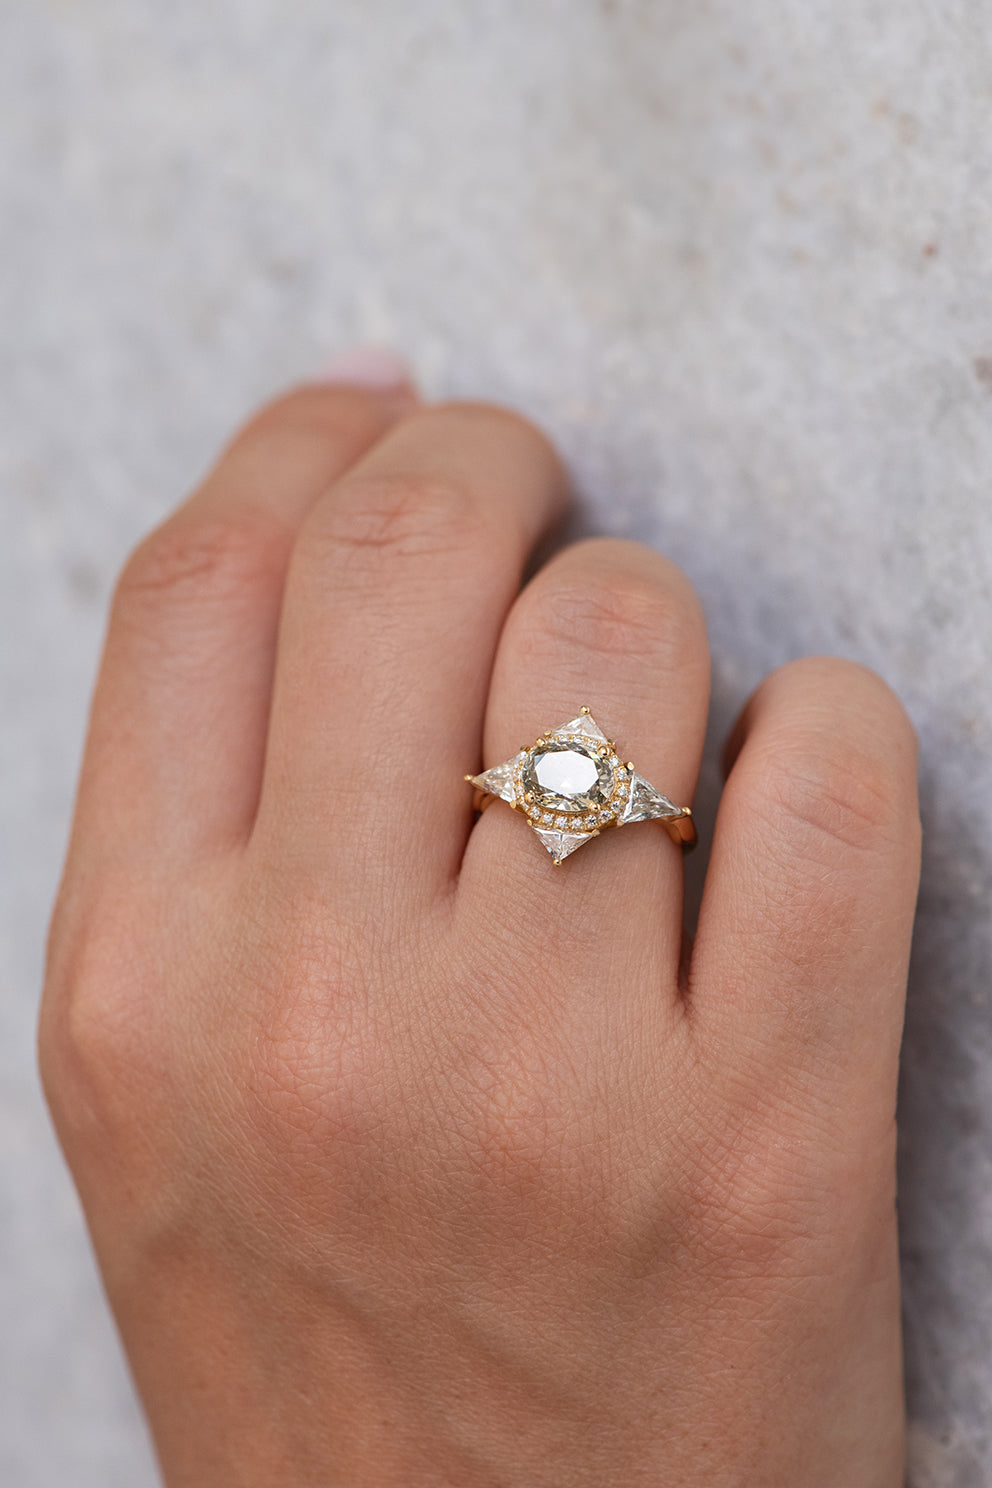 Green Diamond Engagement Ring - OOAK Fancy Color Diamond Ring in Sunlight on Hand